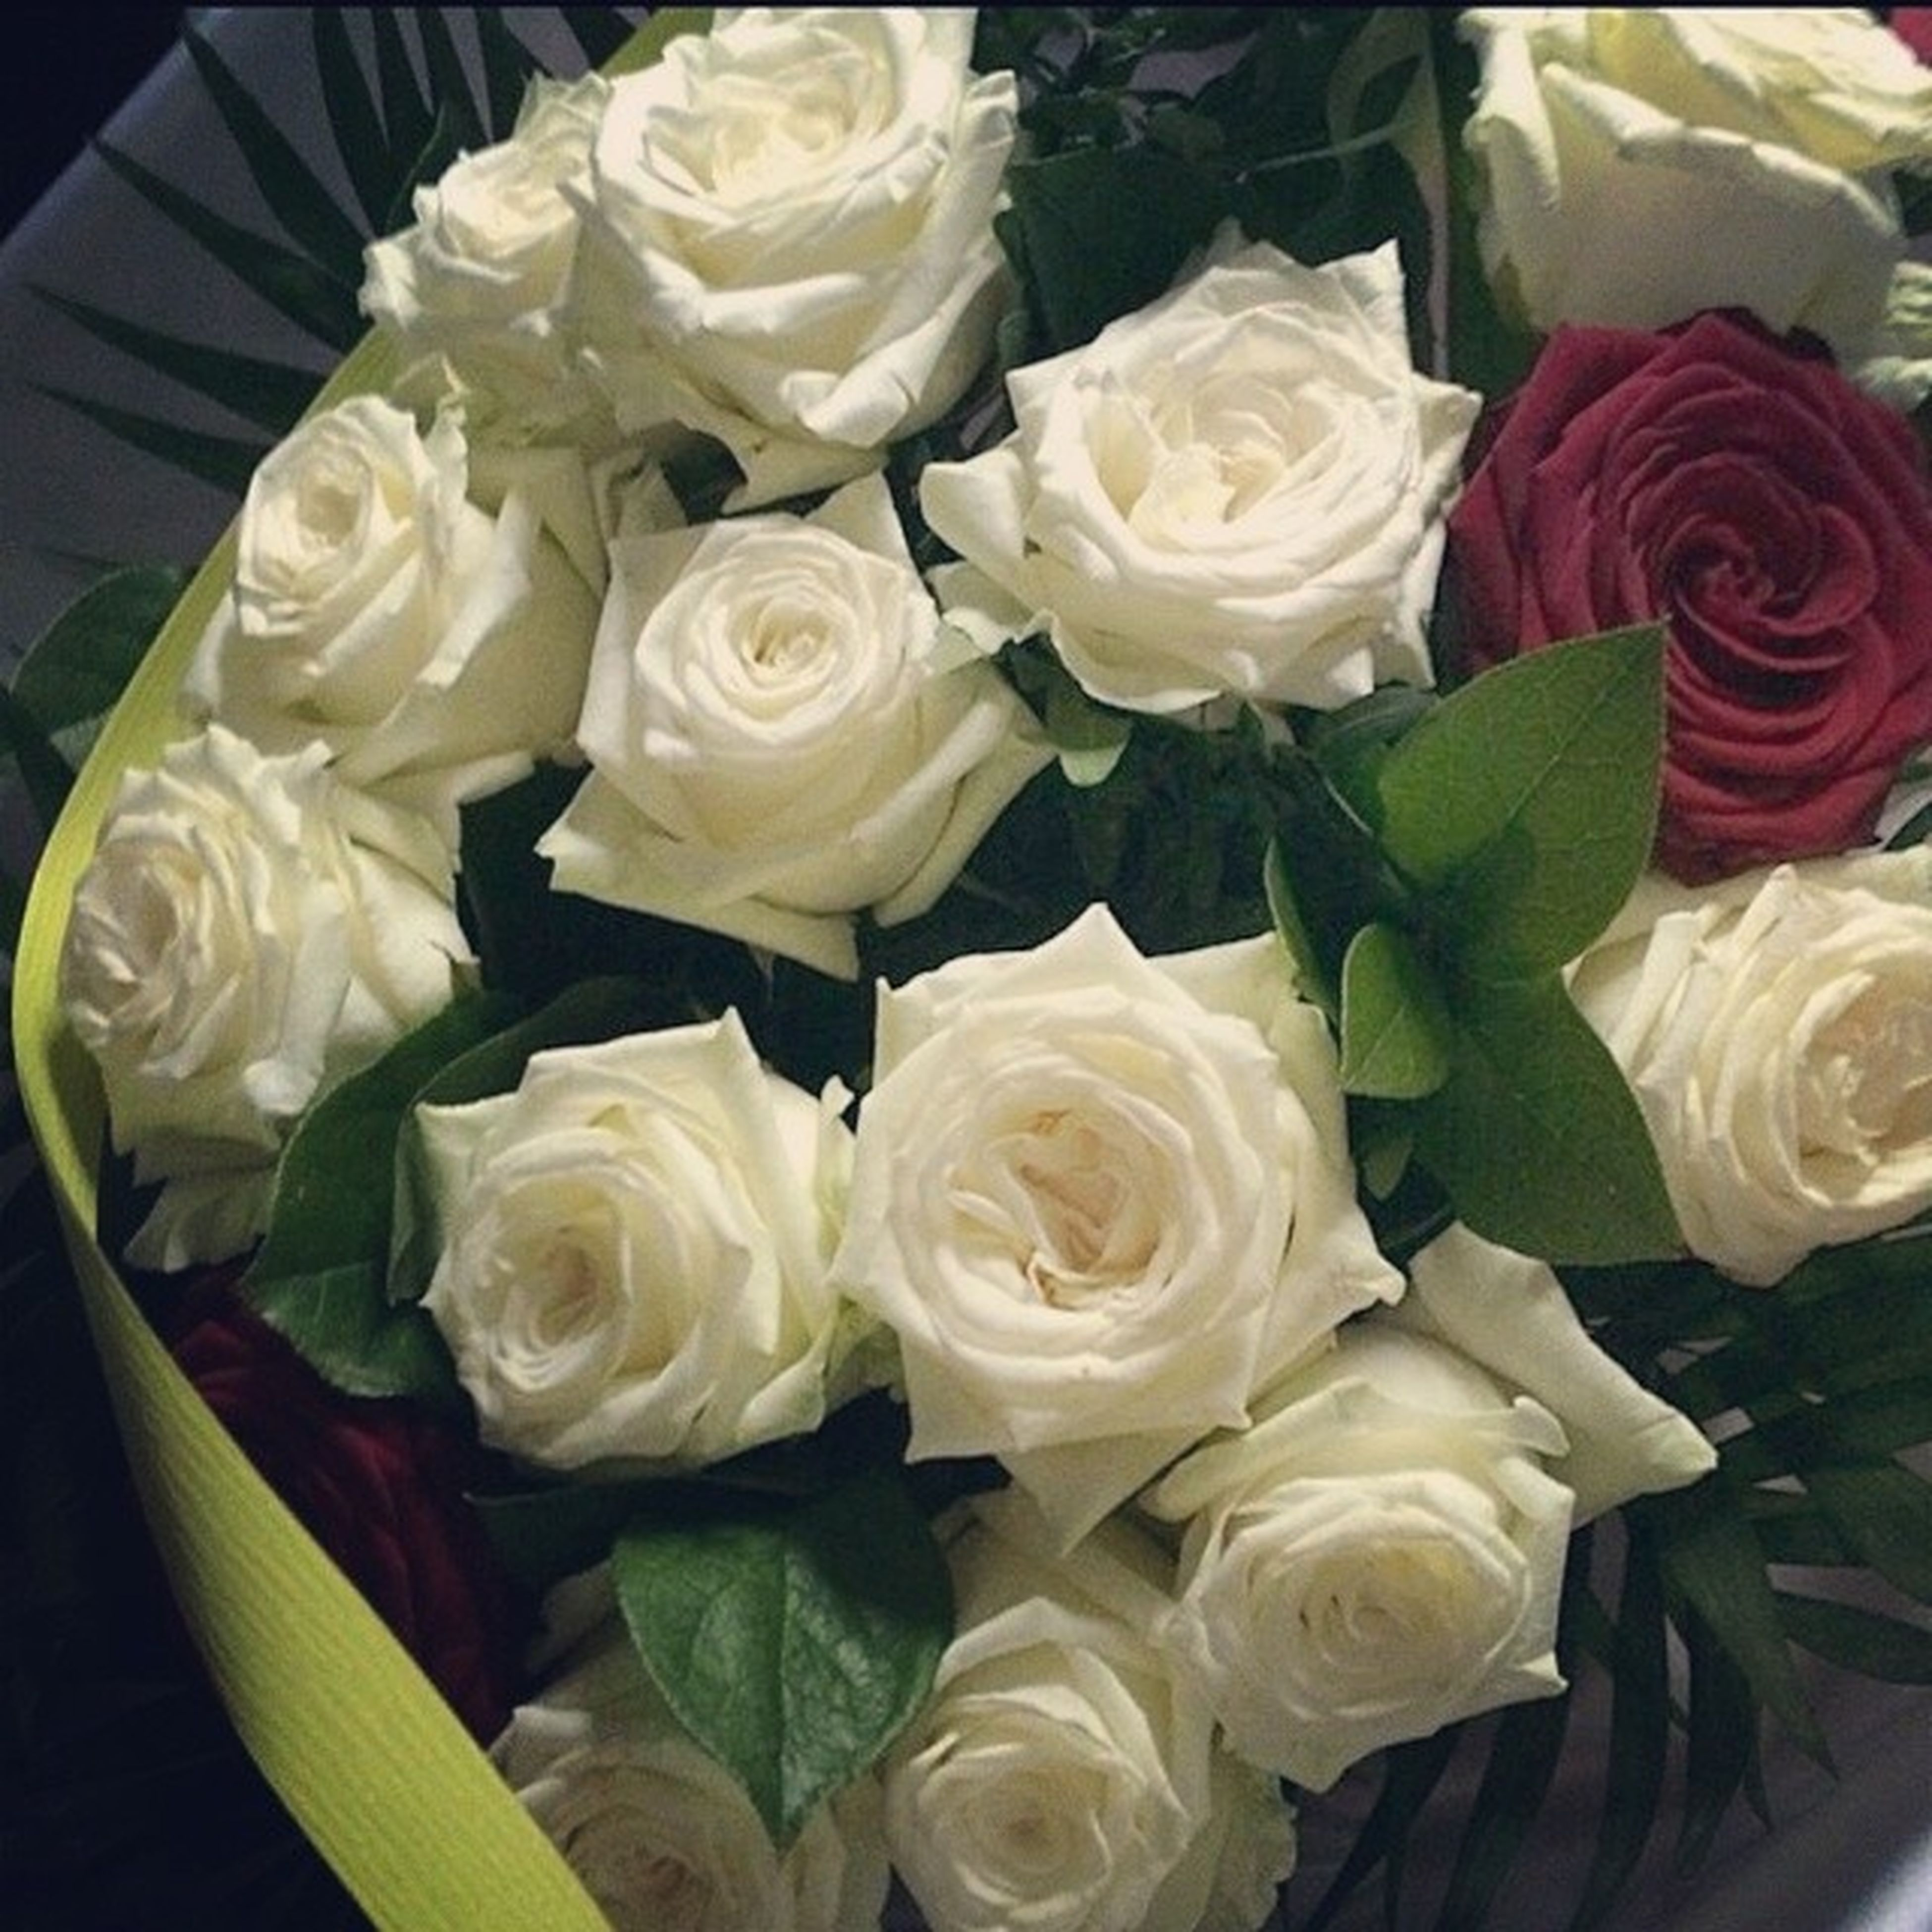 flower, rose - flower, freshness, petal, fragility, flower head, indoors, rose, beauty in nature, bouquet, bunch of flowers, high angle view, close-up, vase, white color, growth, nature, flower arrangement, blooming, variation